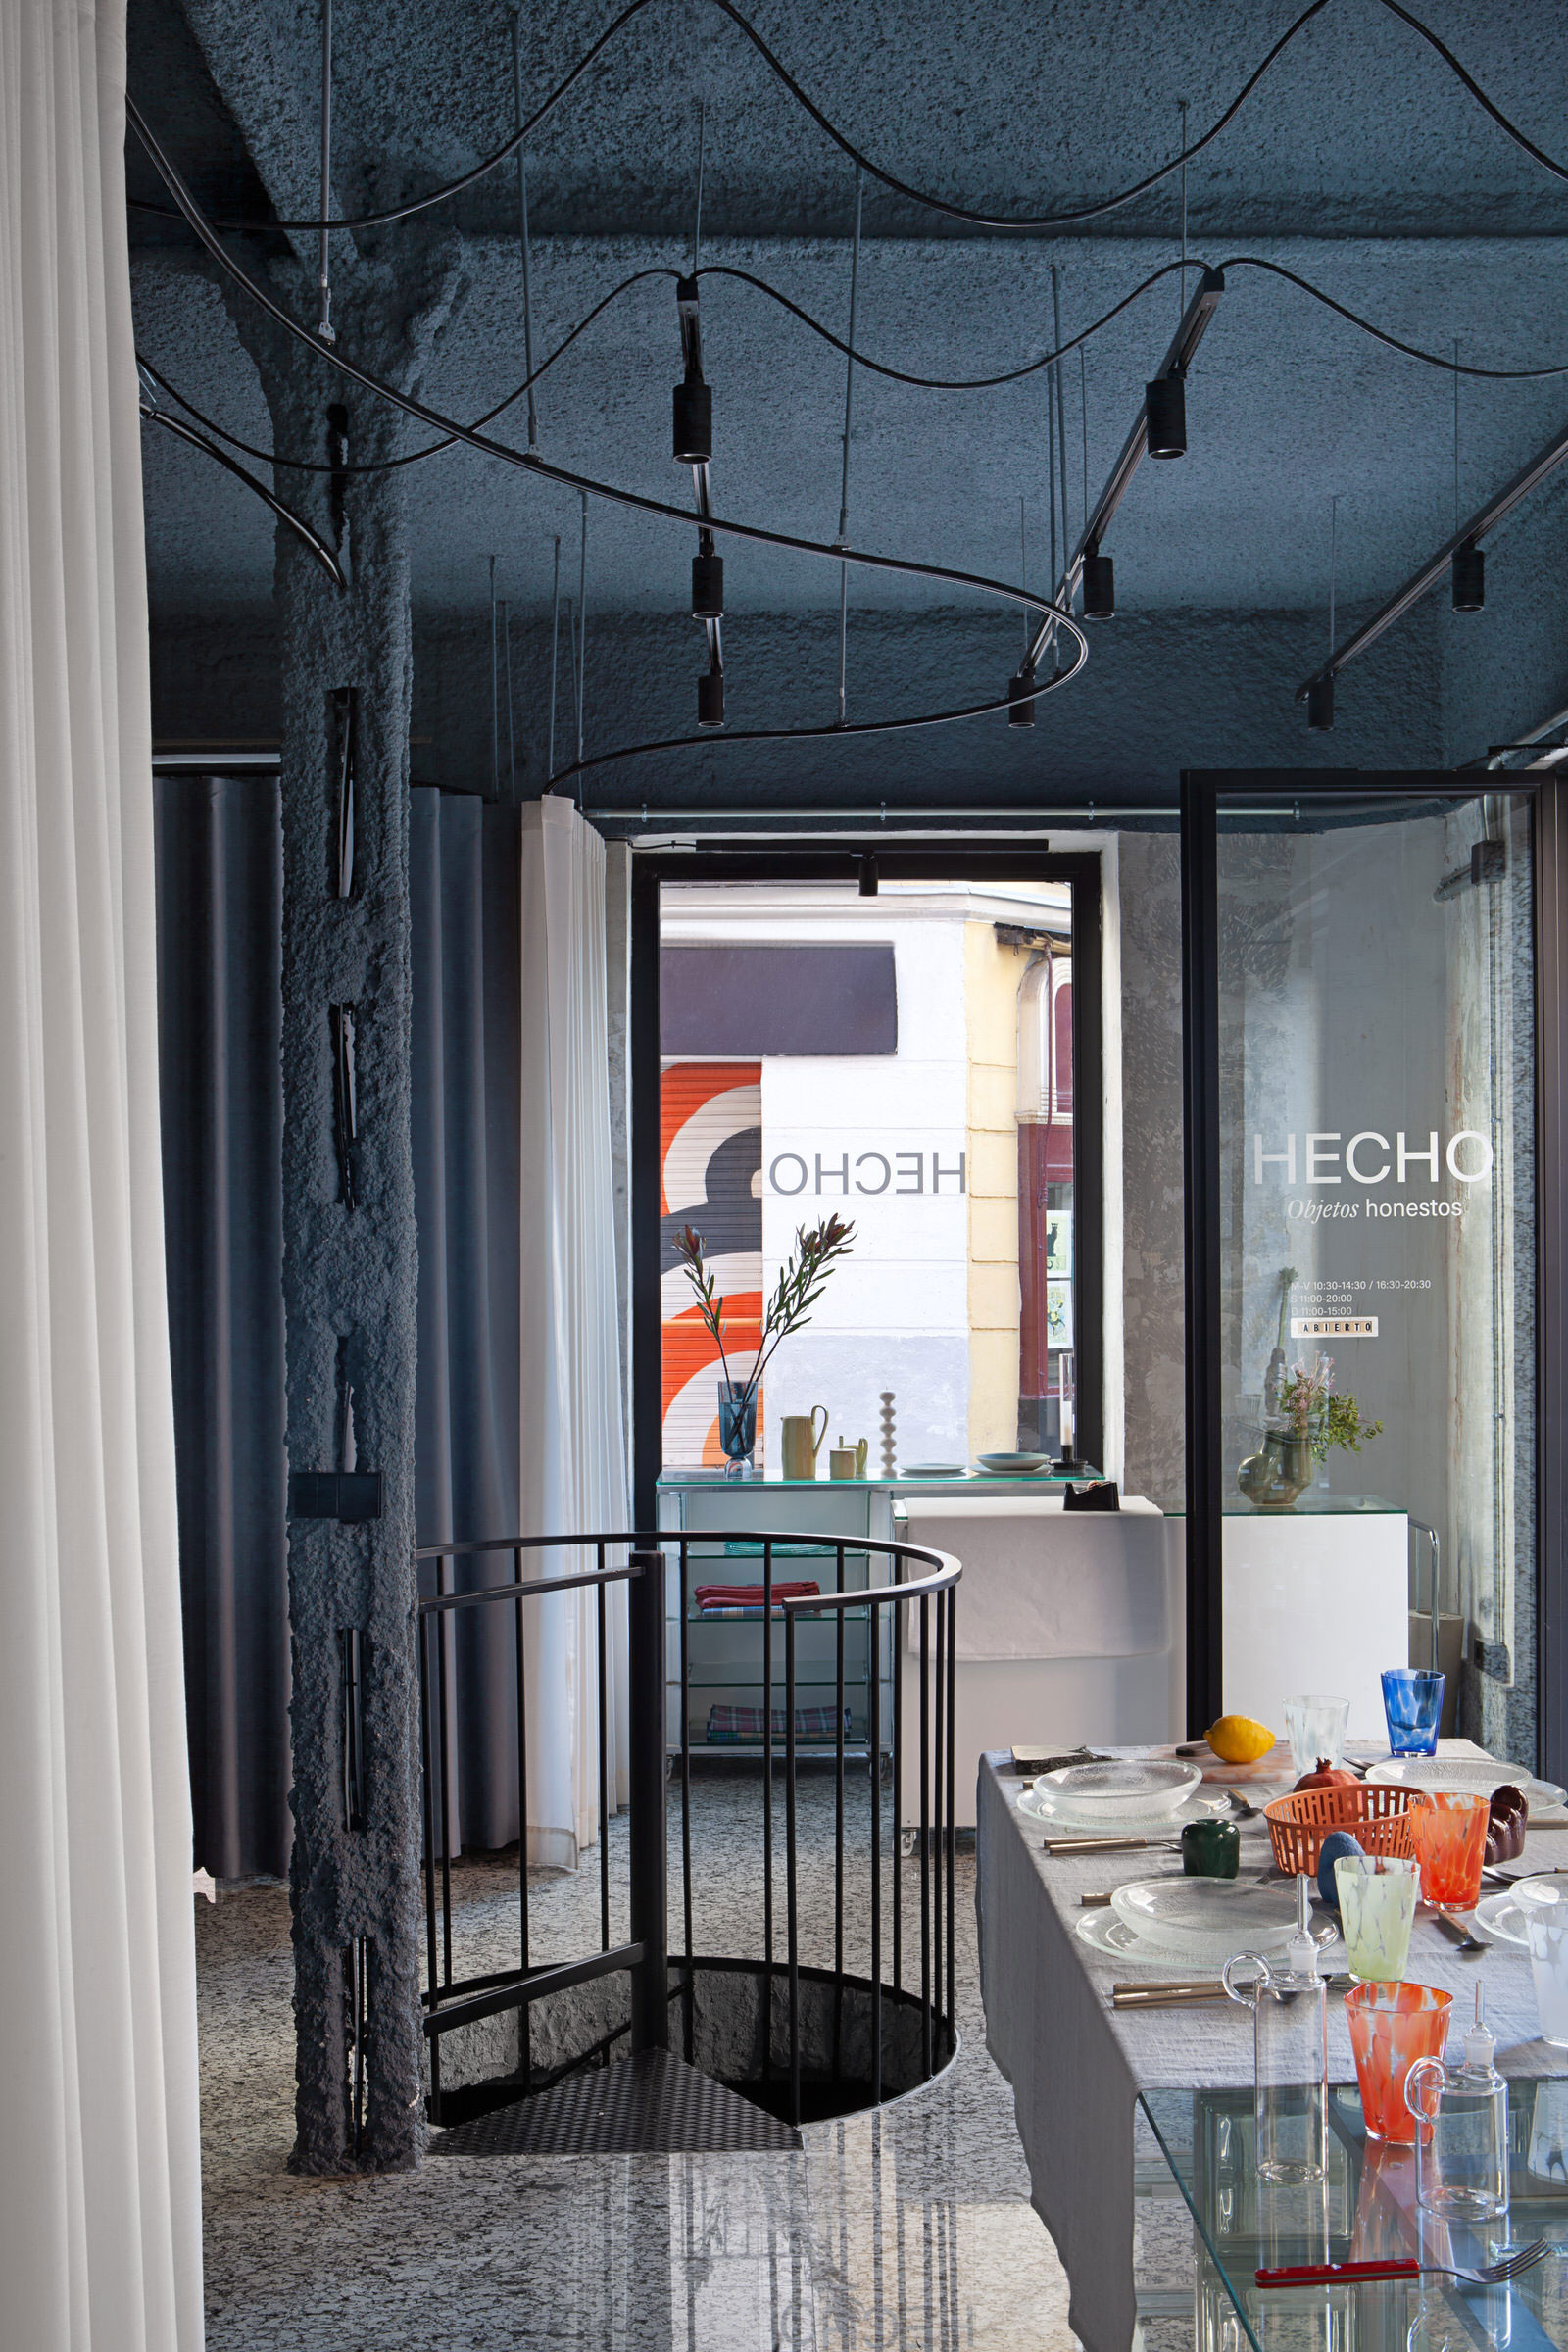 Plutarco Design Office Madrid Hecho Store Photo Asier Rua Yellowtrace 19